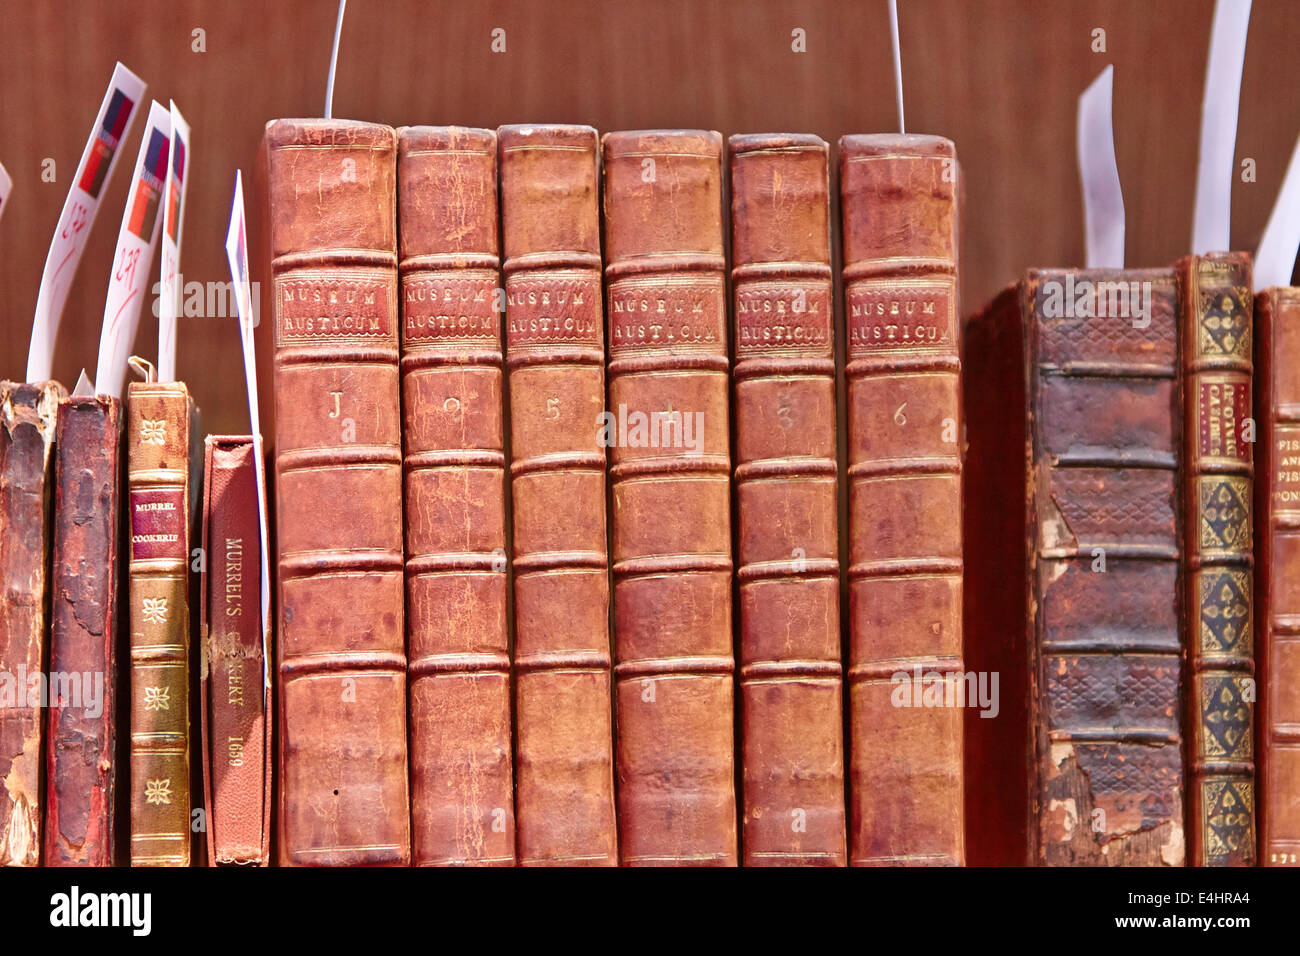 Old leather bound Museum Rusticum books about farming and agriculture - Stock Image